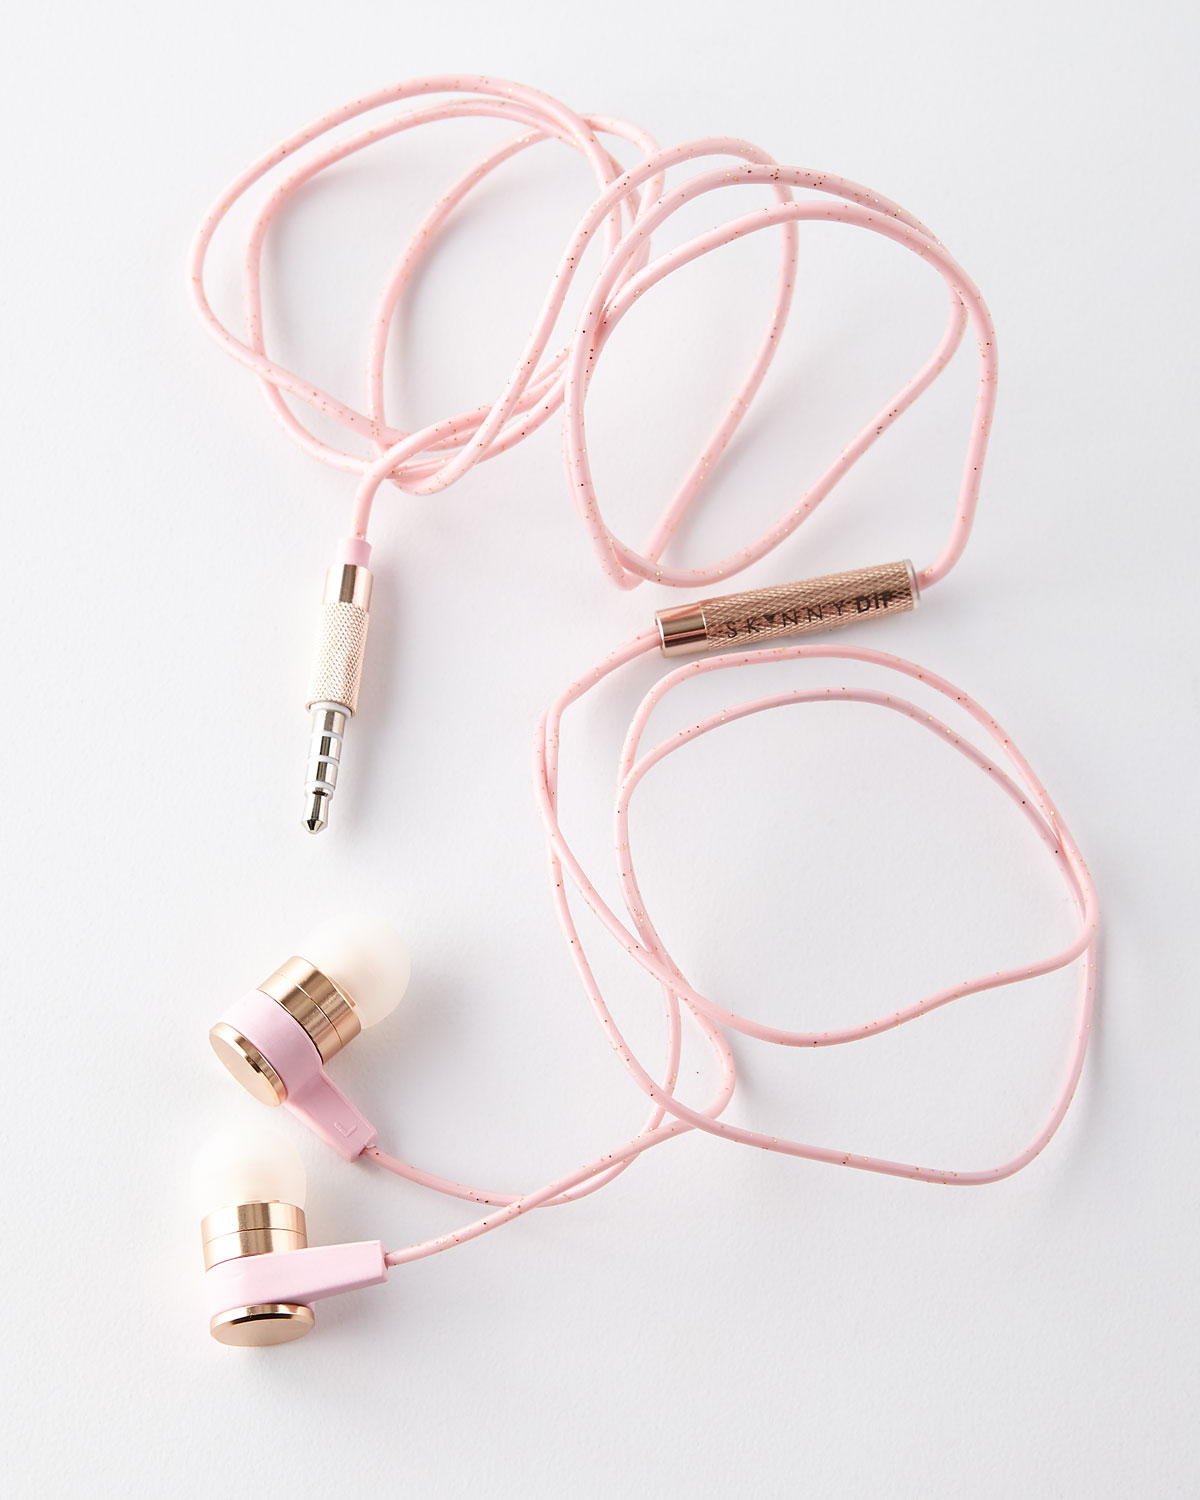 Earbuds, Rose Gold